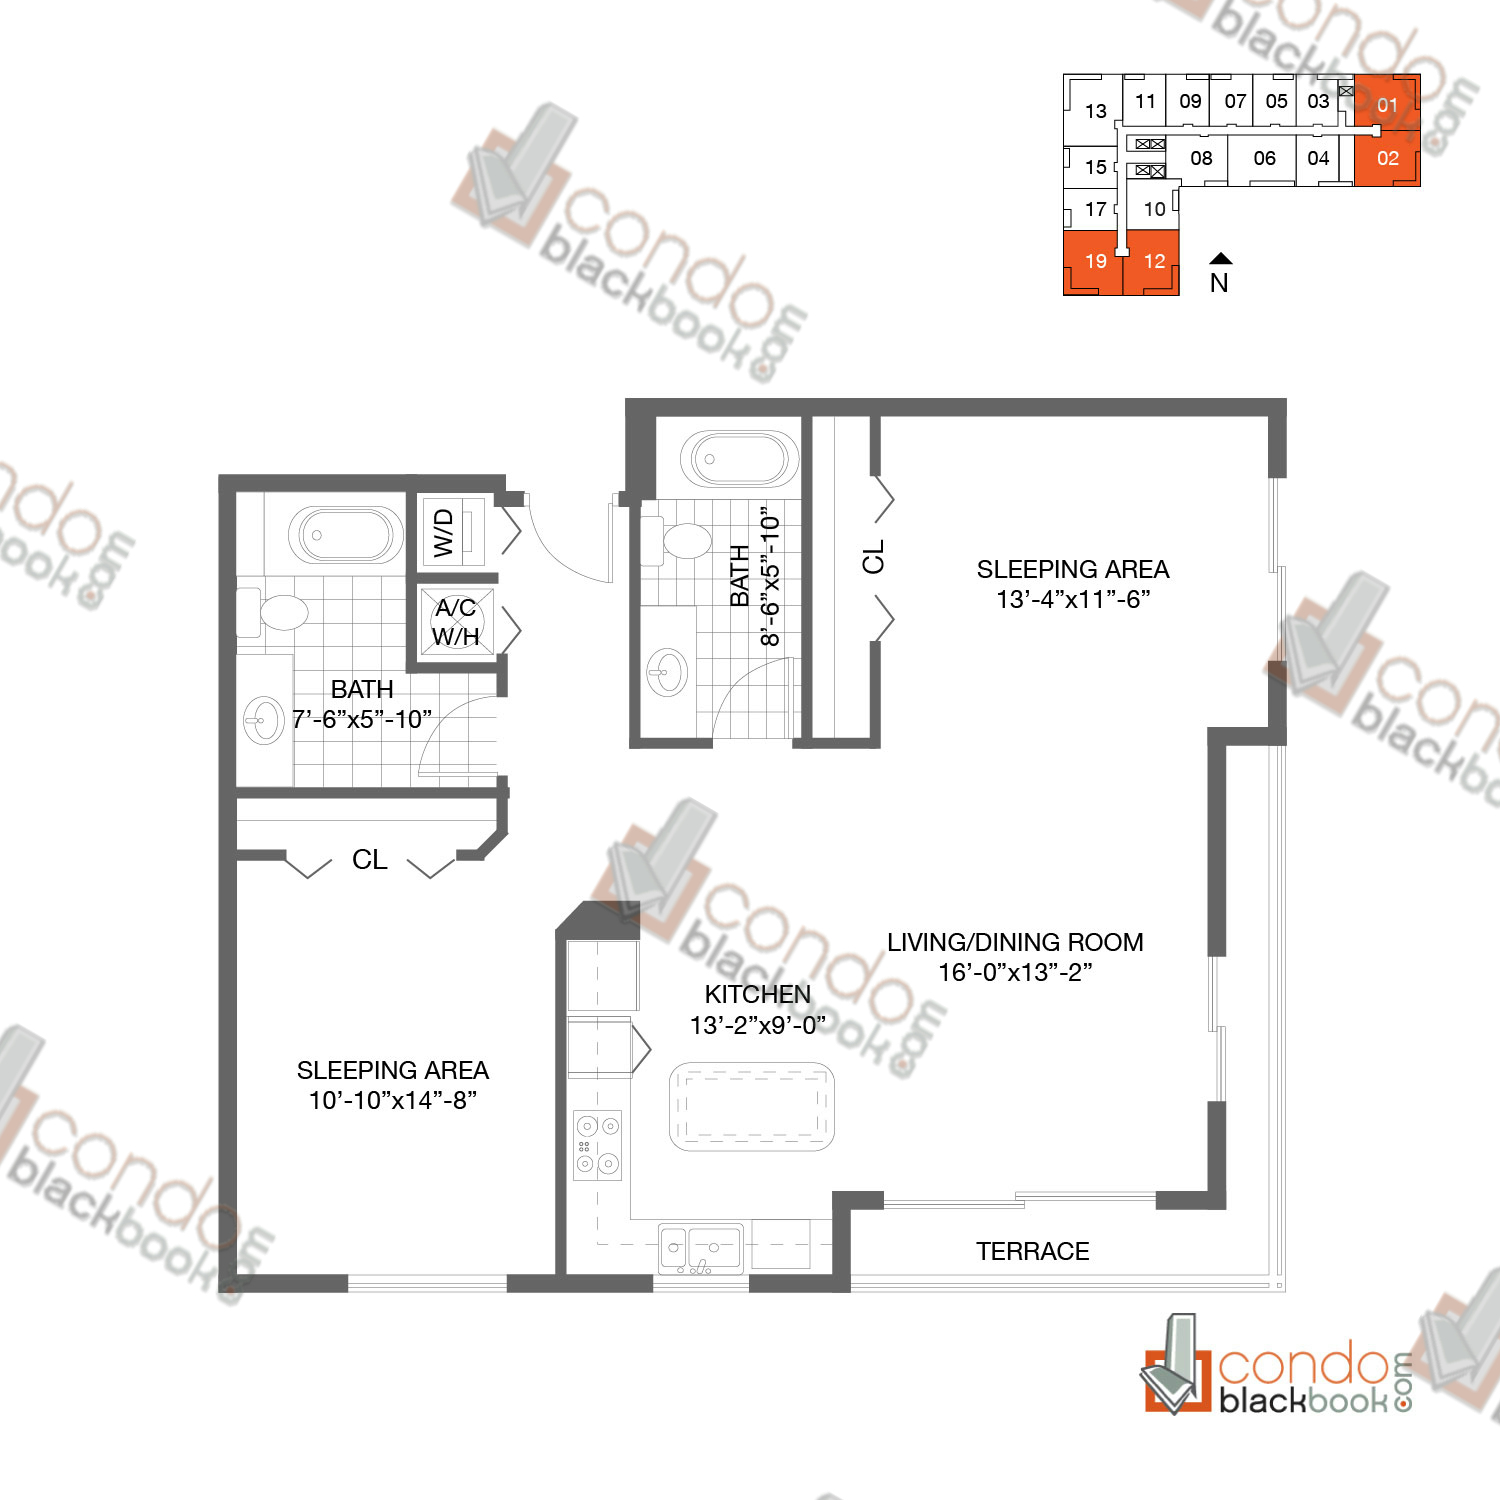 Floor plan for Loft Downtown II Downtown Miami Miami, model B2, line 01, 02, 12, 19, 2/2 bedrooms, 1,041 sq ft